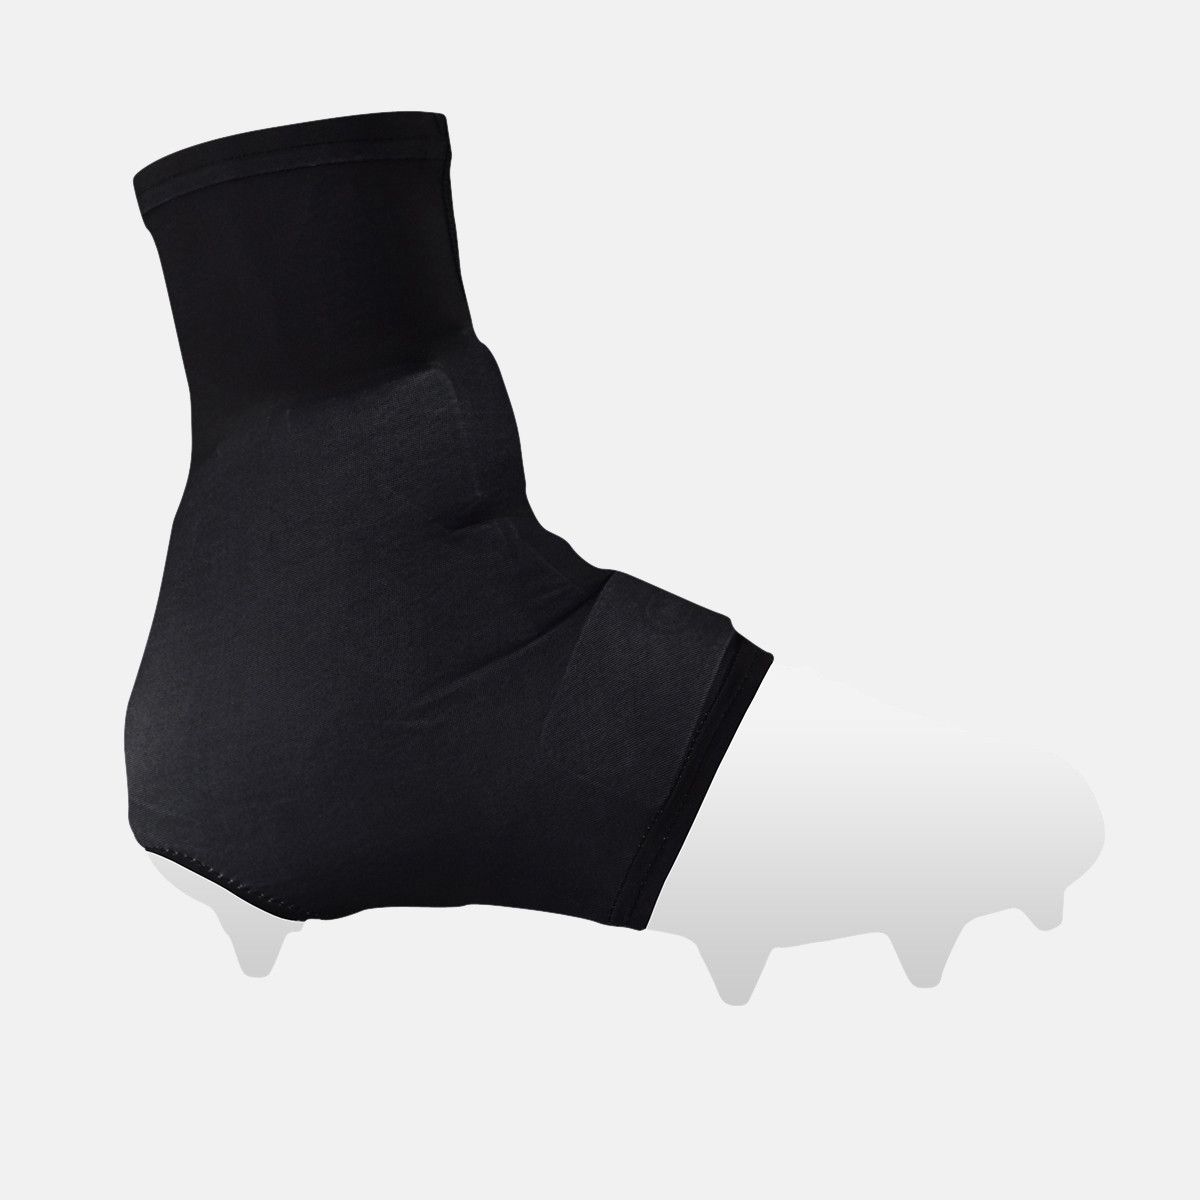 Basic black spats cleat covers cleats black spandex